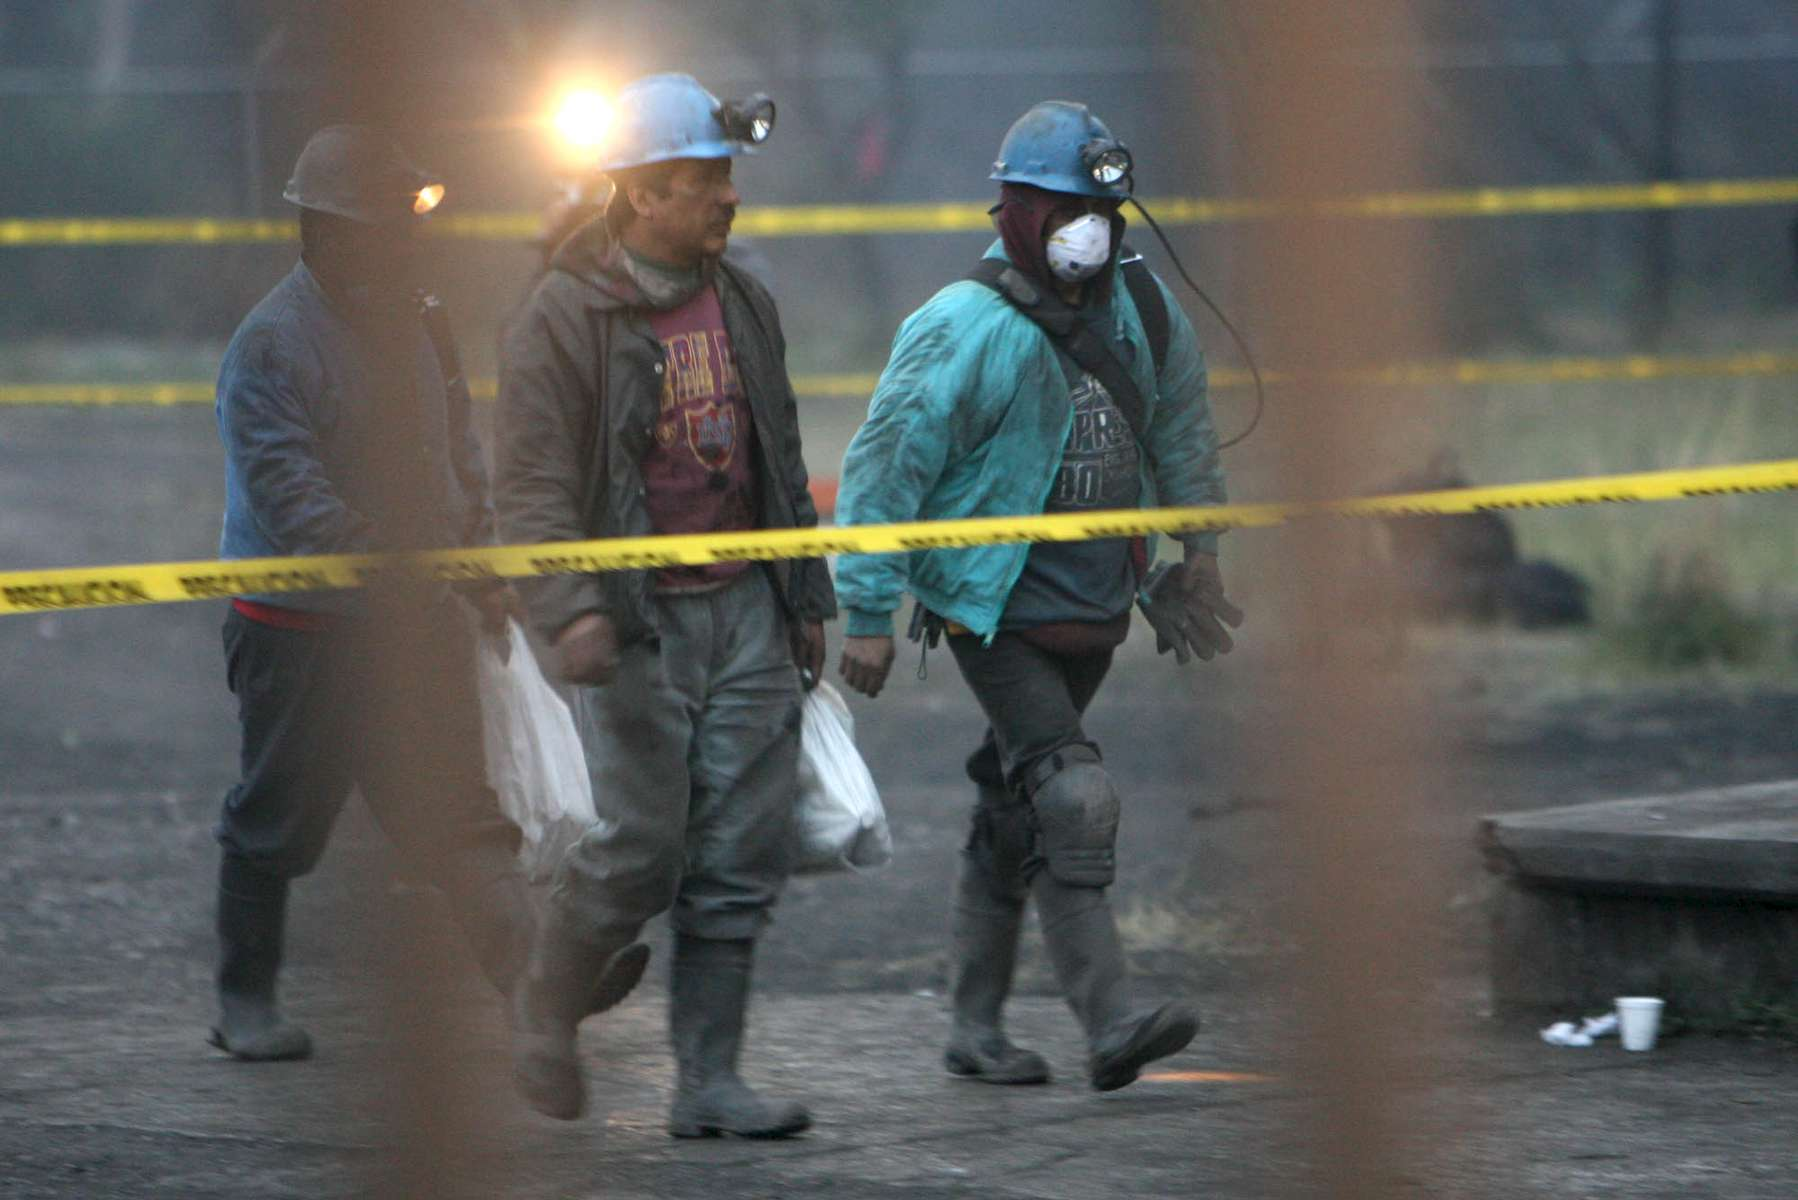 Miners walk outside of the Pasta de Conchos coal mine in San Juan de Sabinas in the Mexican state of Coahuila Tuesday. Family members waited outside the Pasta de Conchos coal mine Tuesday. In the Early morning on Sunday 66 miners were trapped 163 meters below ground after an explosion.Sharón Steinmann / Houston Chronicle